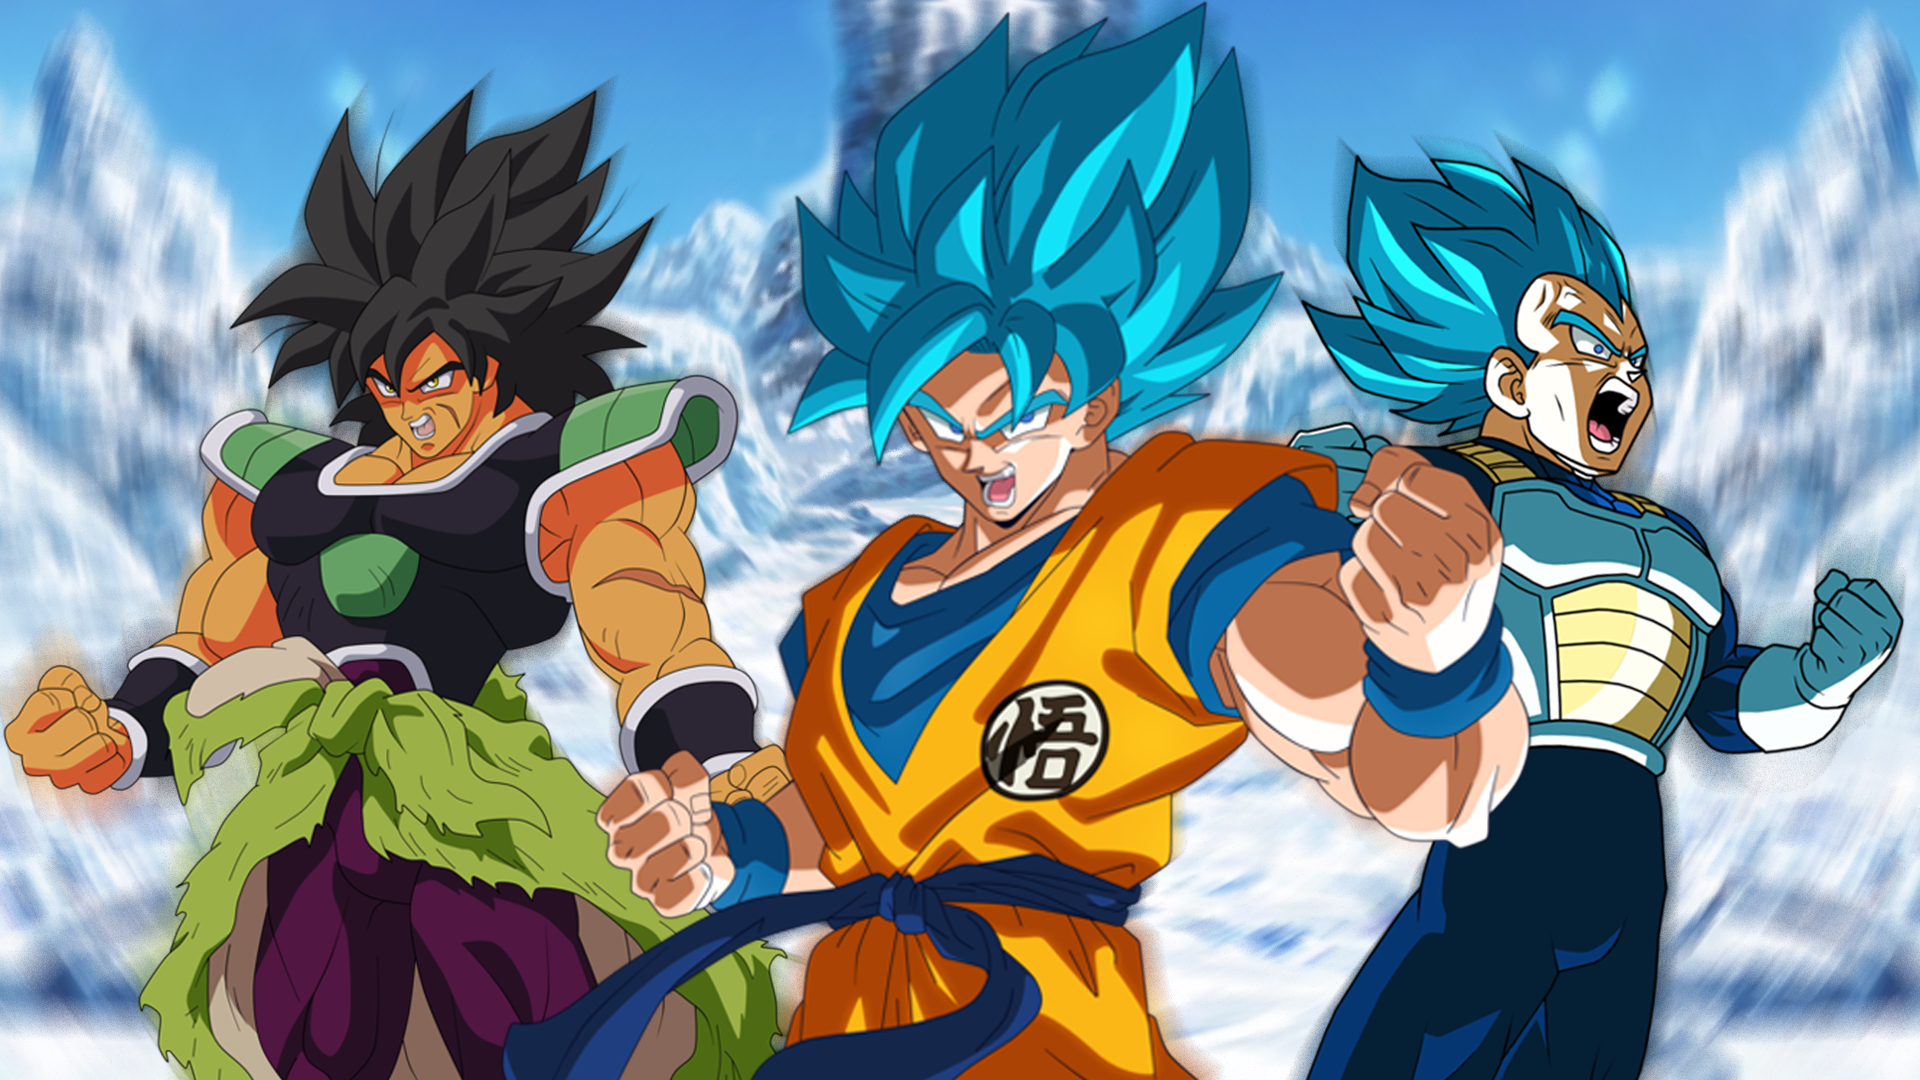 23 Dragon Ball Super Broly Wallpapers On Wallpapersafari